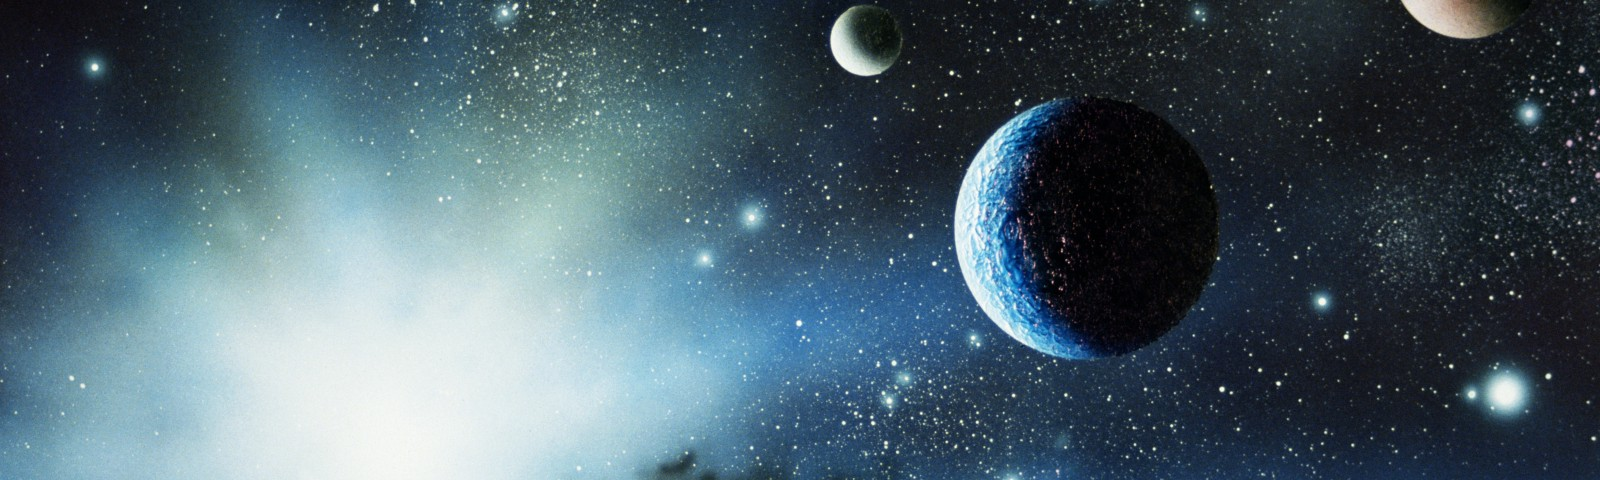 Various planets and stars in space.